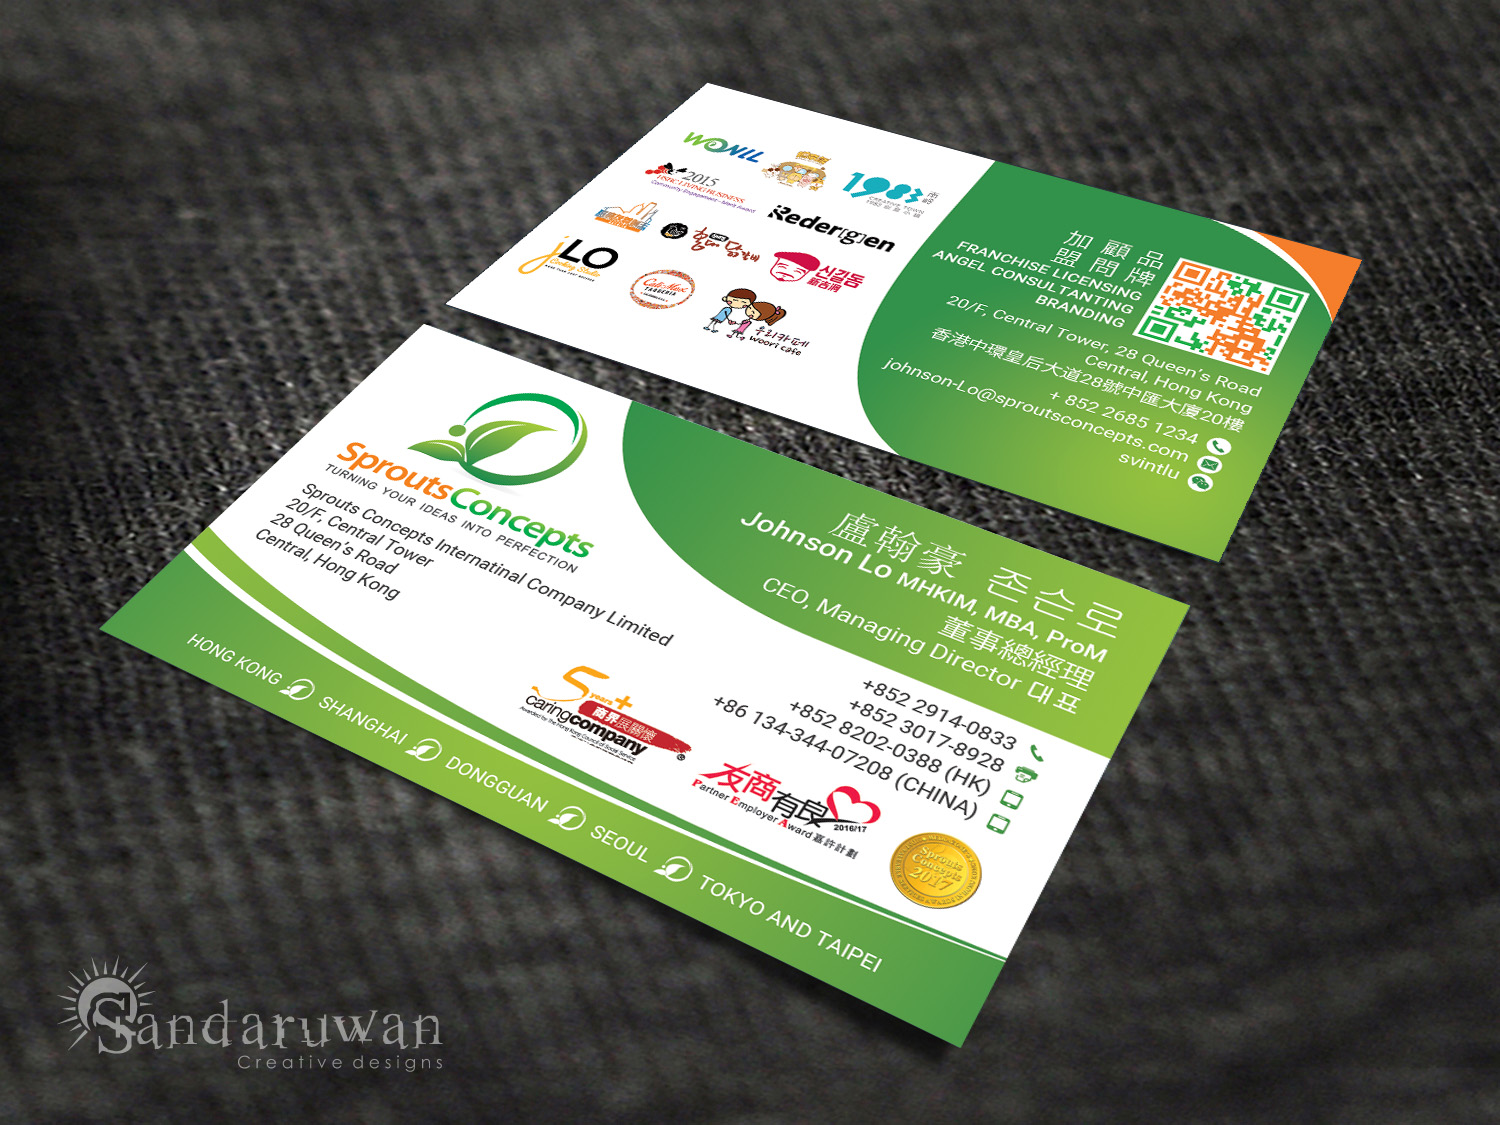 Modern professional it professional business card design for in hong kong design 14721242 business card design by sandaruwan for sprouts concepts international company limited design 14721242 reheart Image collections